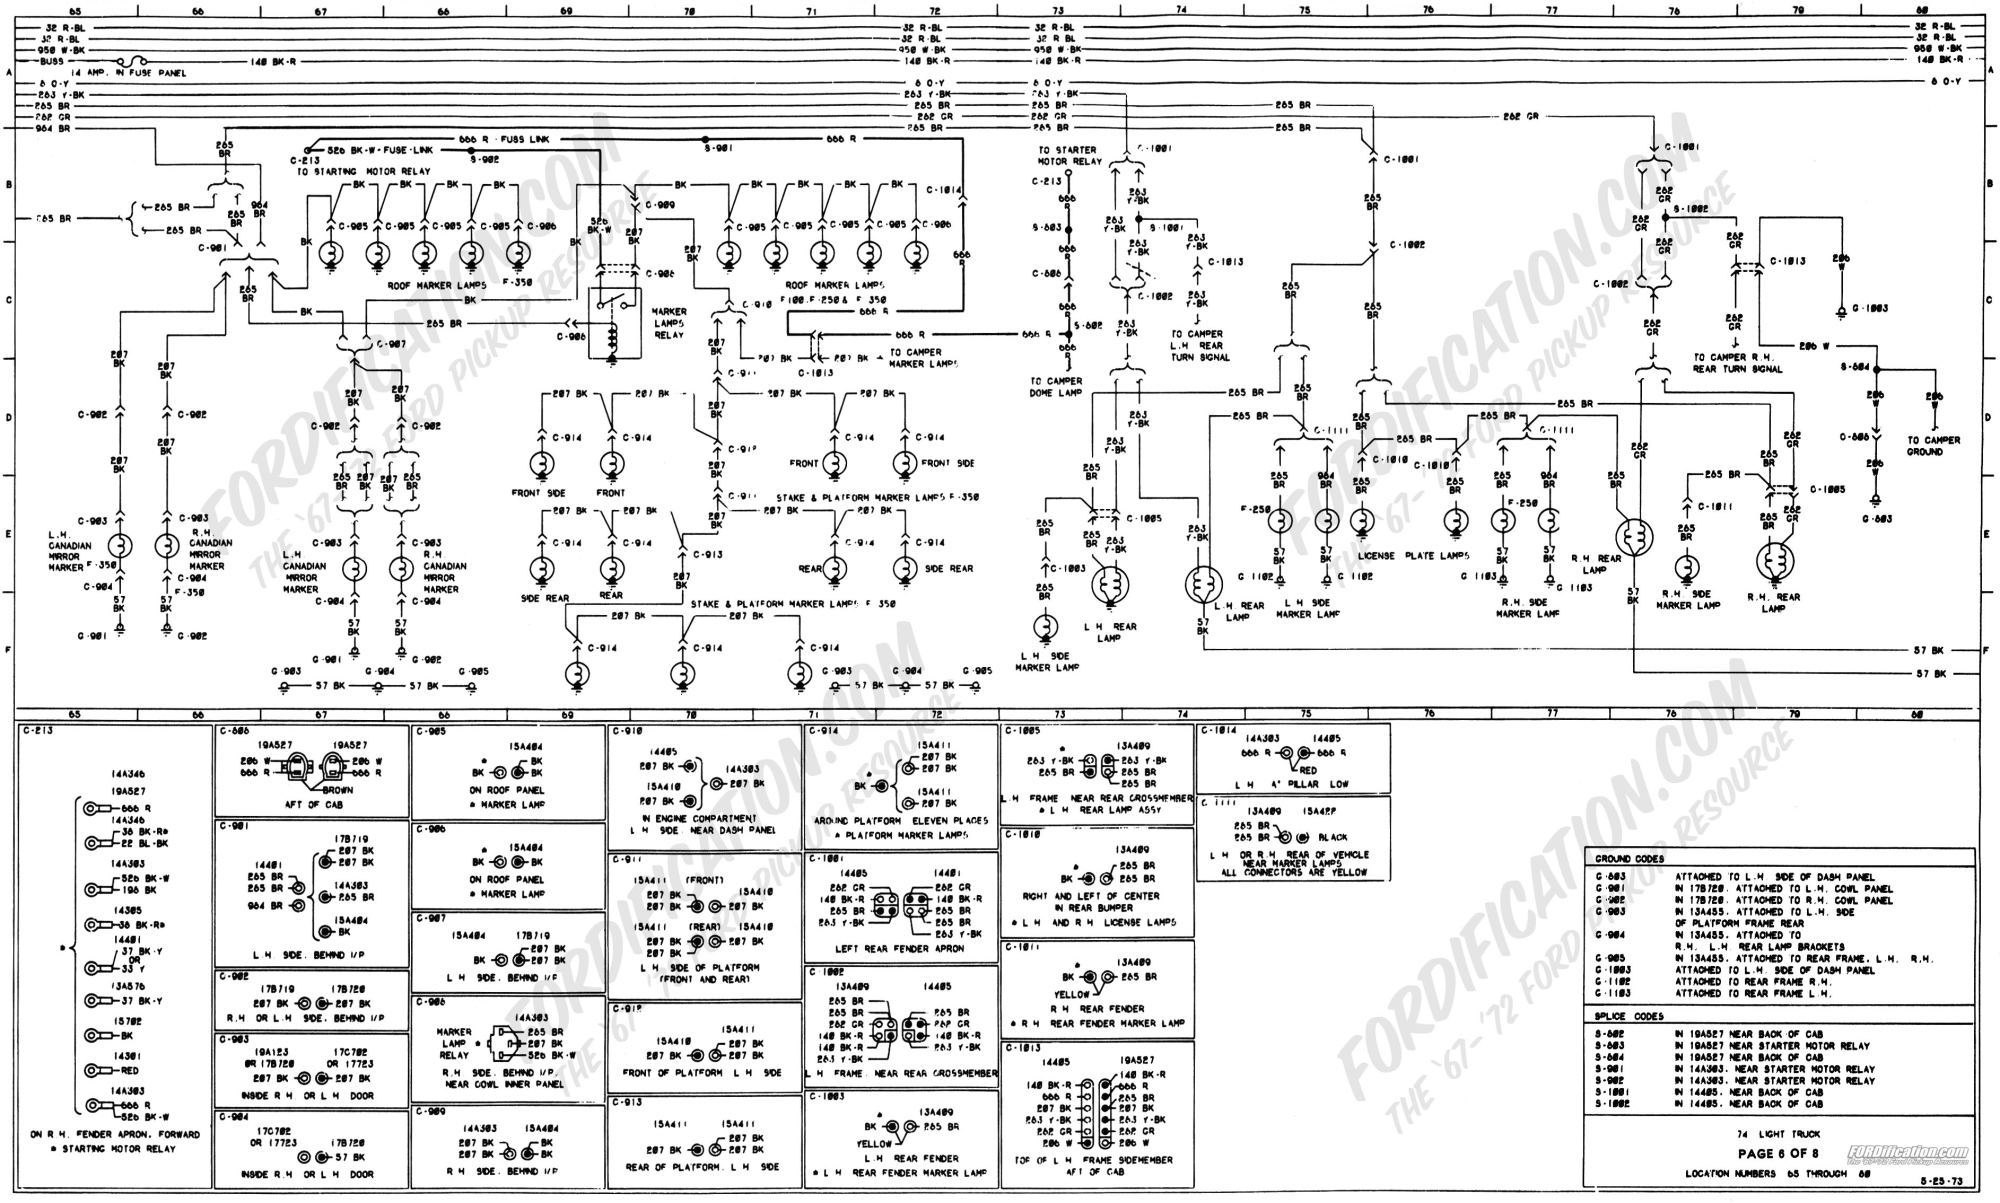 hight resolution of 2003 ford f 250 wiring diagram trusted wiring diagram wiring diagram for 2001 ford f250 wiring diagram for 2003 ford f250